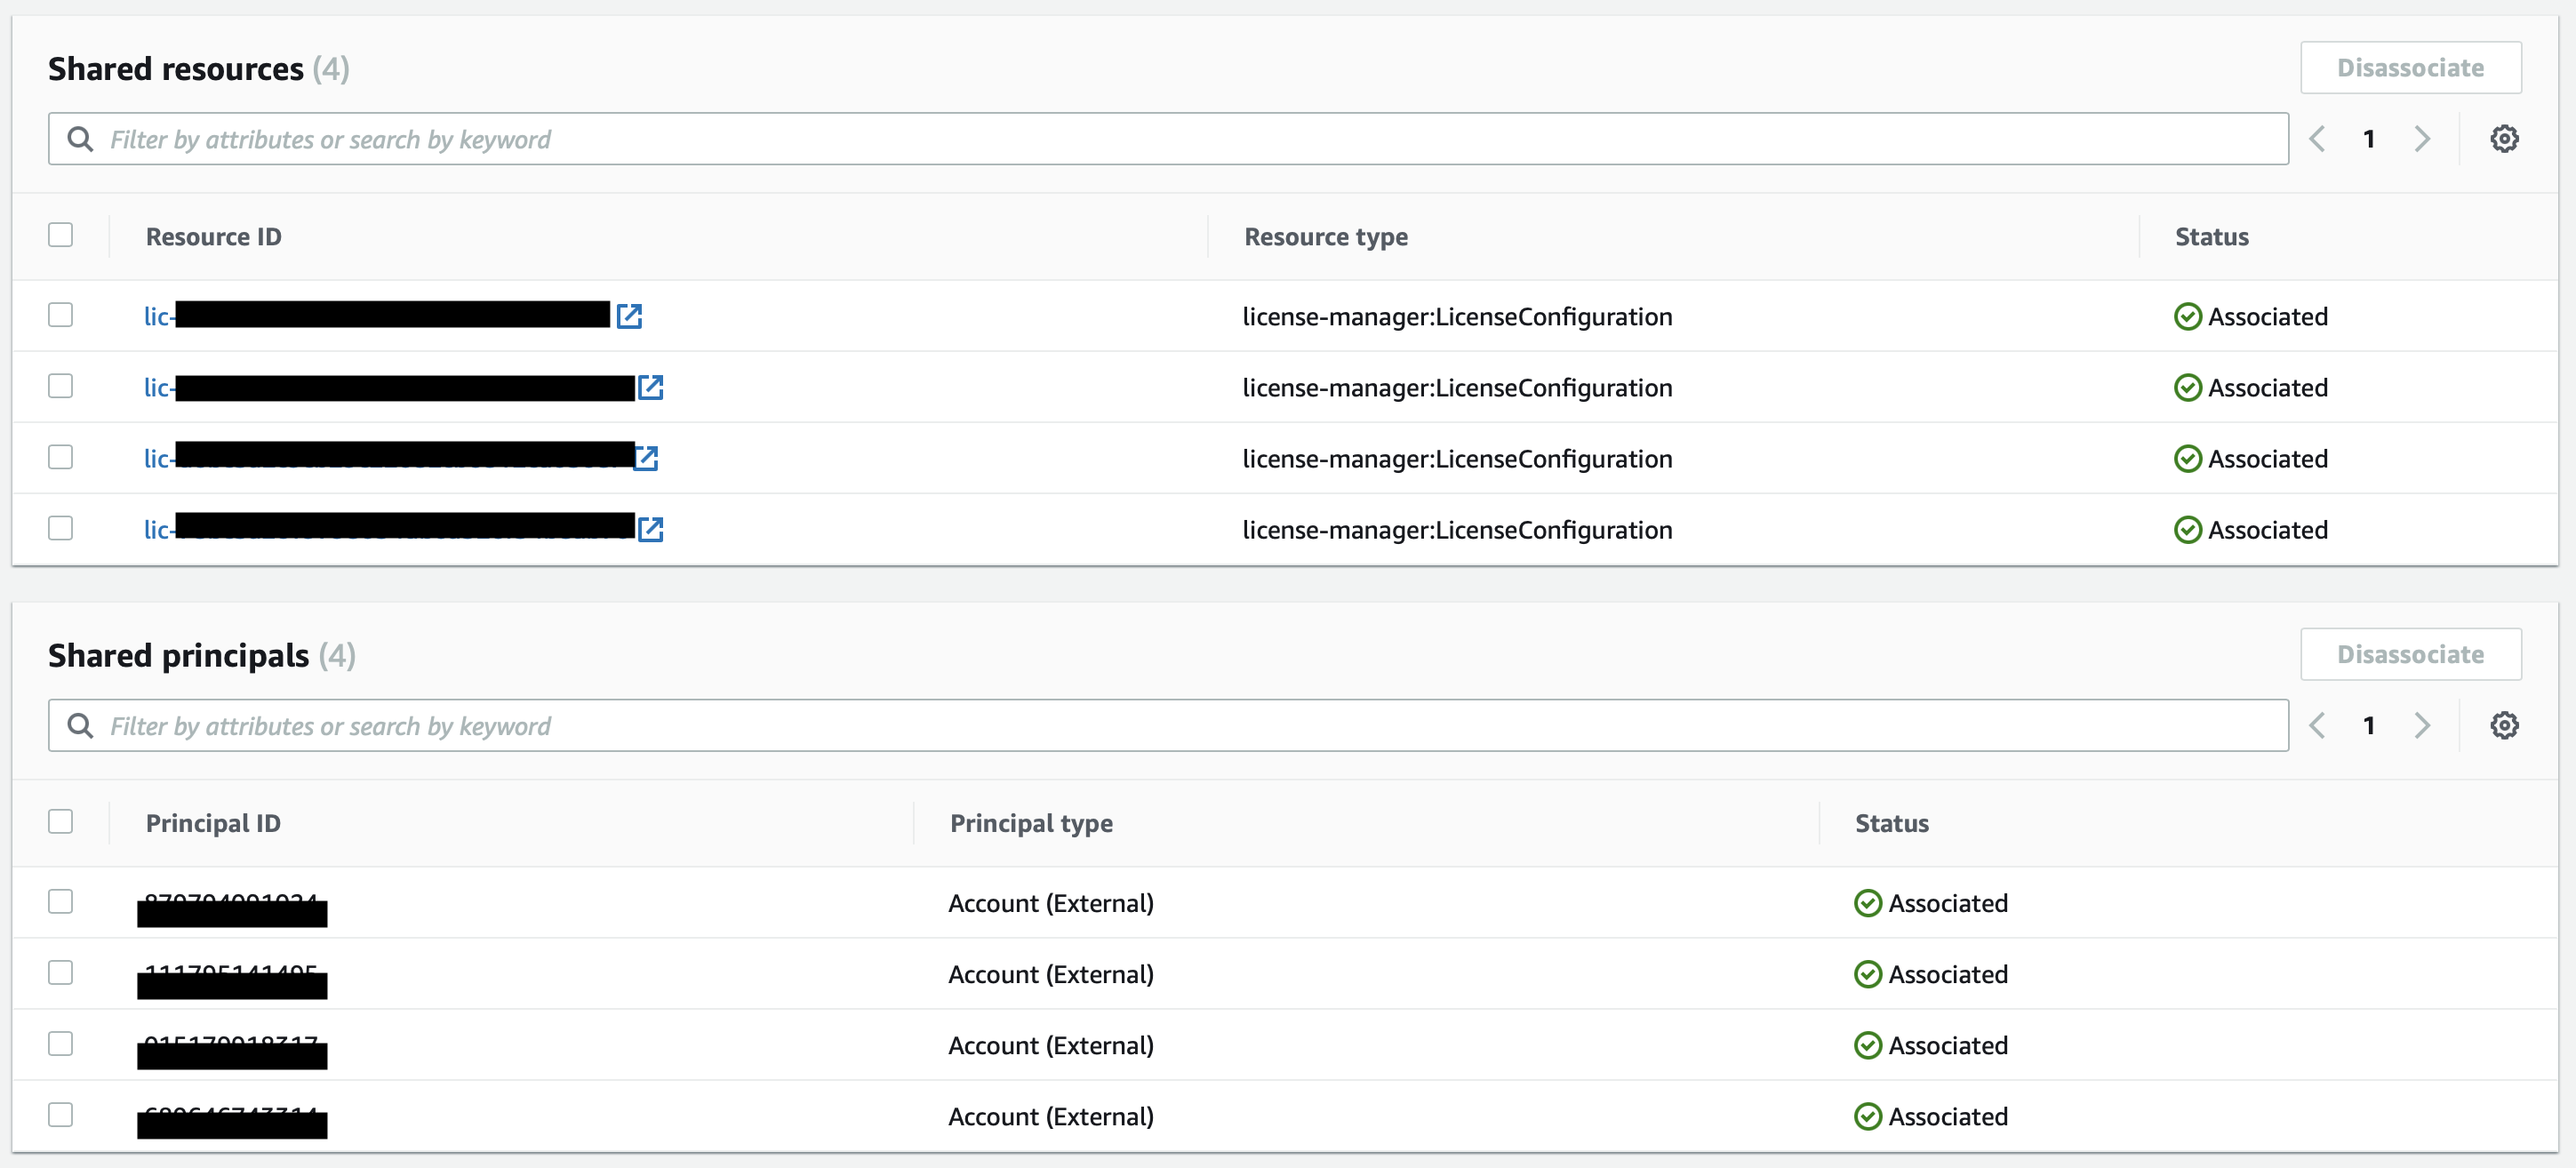 The AWS Resource Access Manager console displays shared resources and shared principals in lists organized by ID, type, and status.